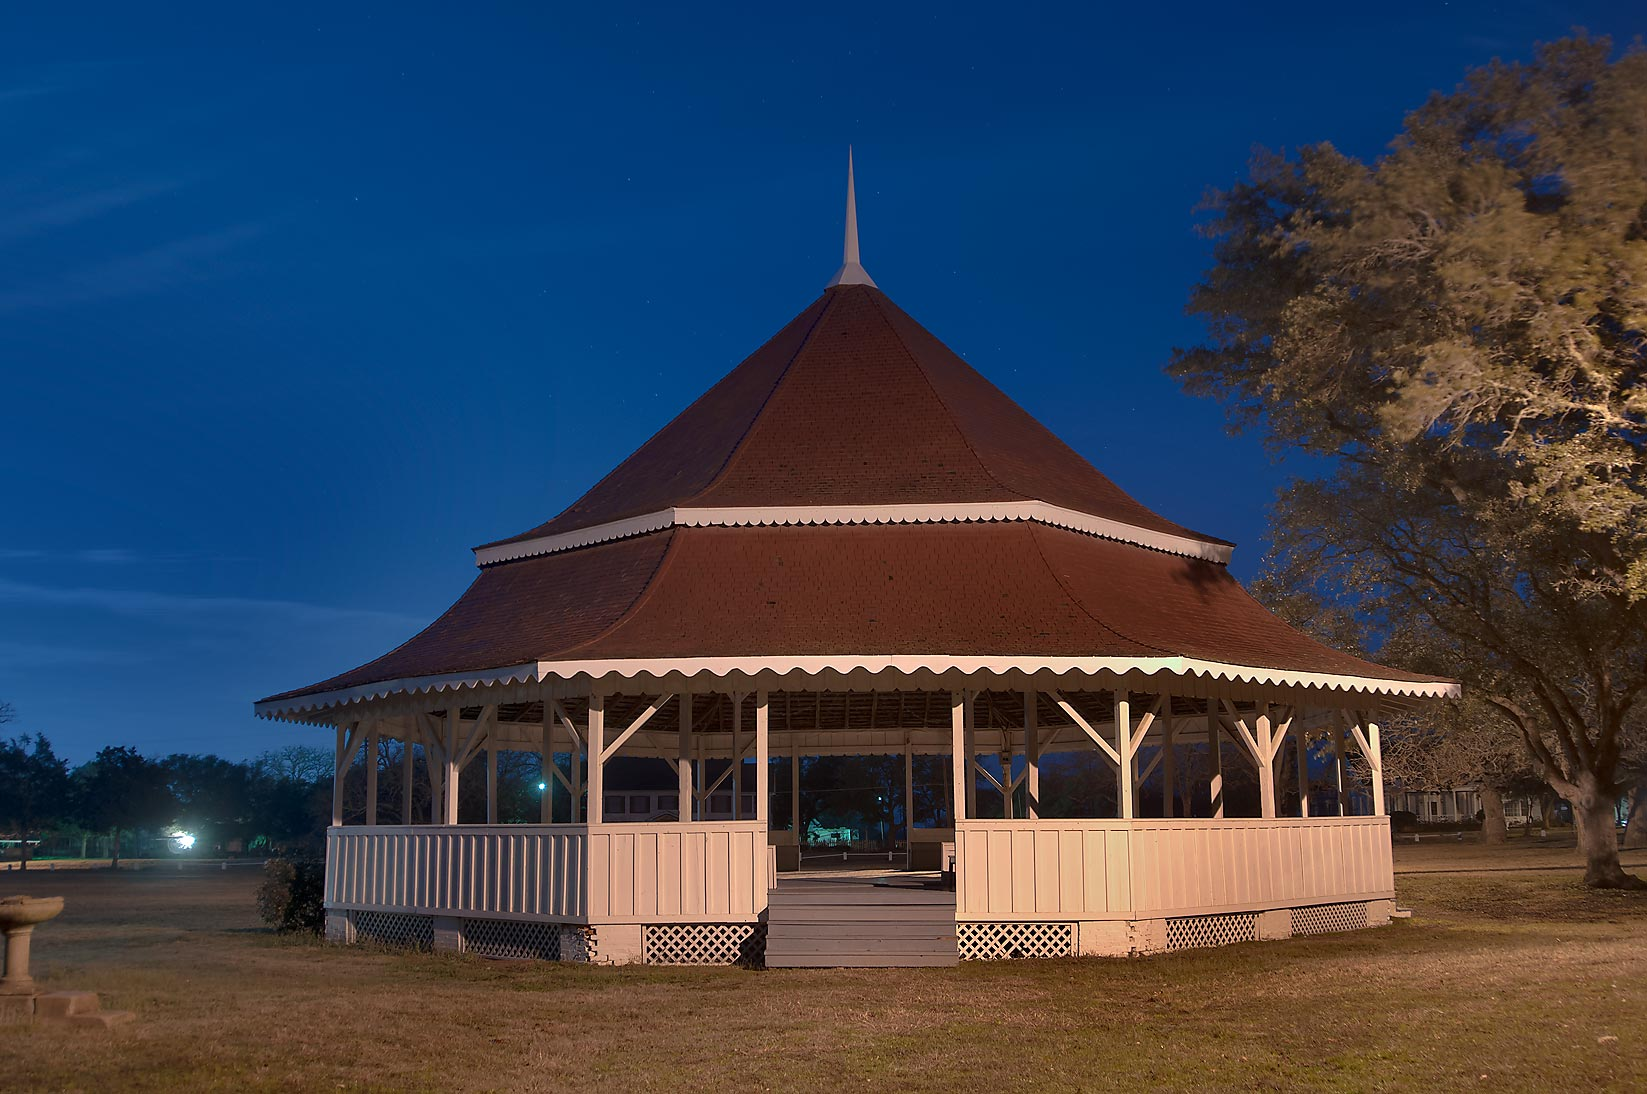 Gazebo-style octogonal bandstand (1895) (Karen...of Virginia Field Park. Calvert, Texas